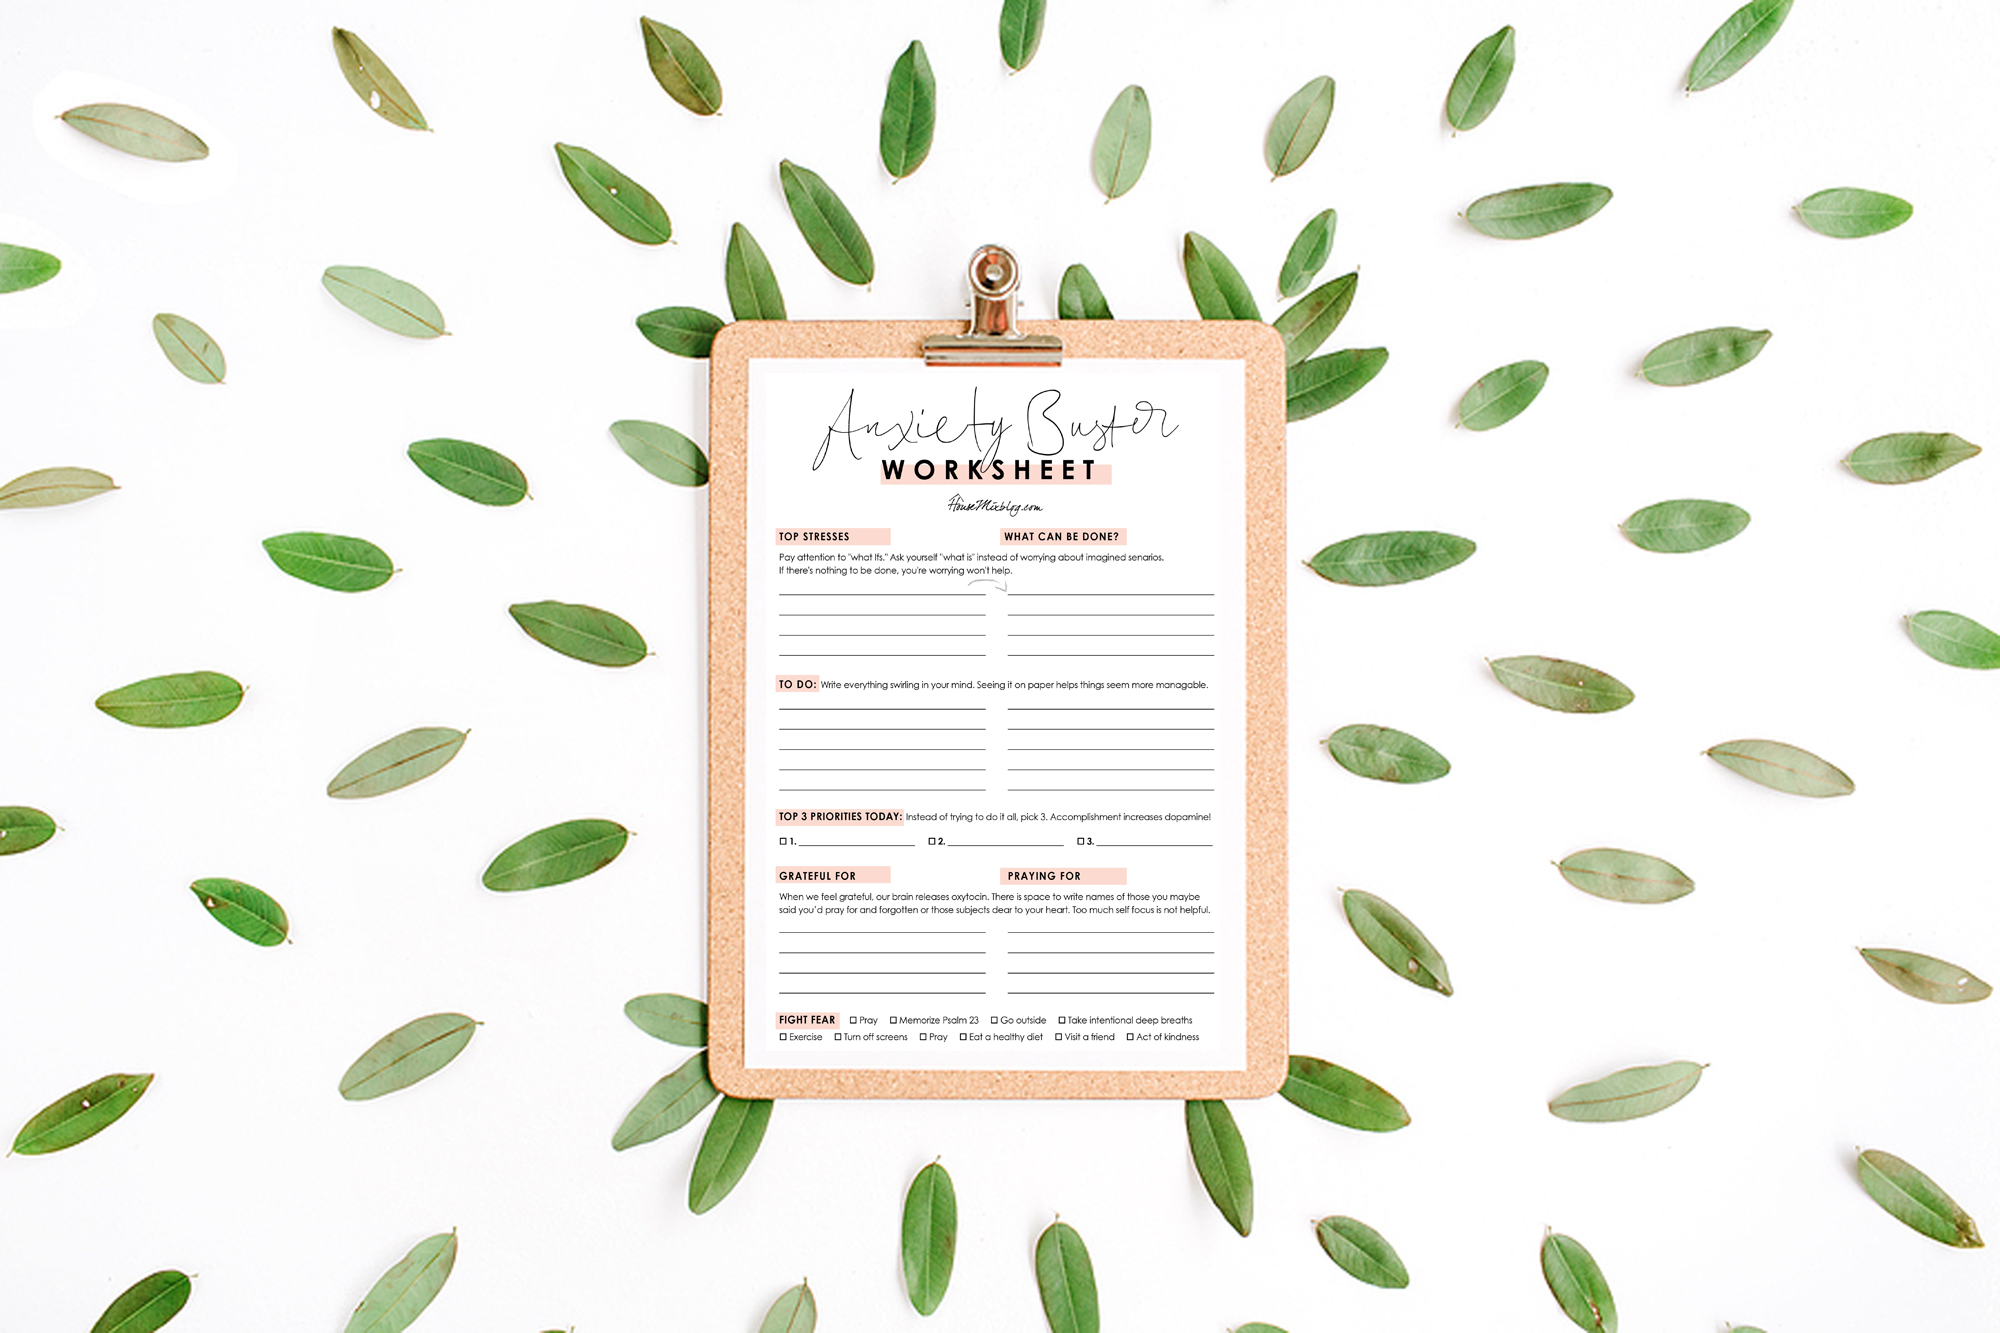 Anxiety Buster Worksheet How To Get Rid Of Anxiety And